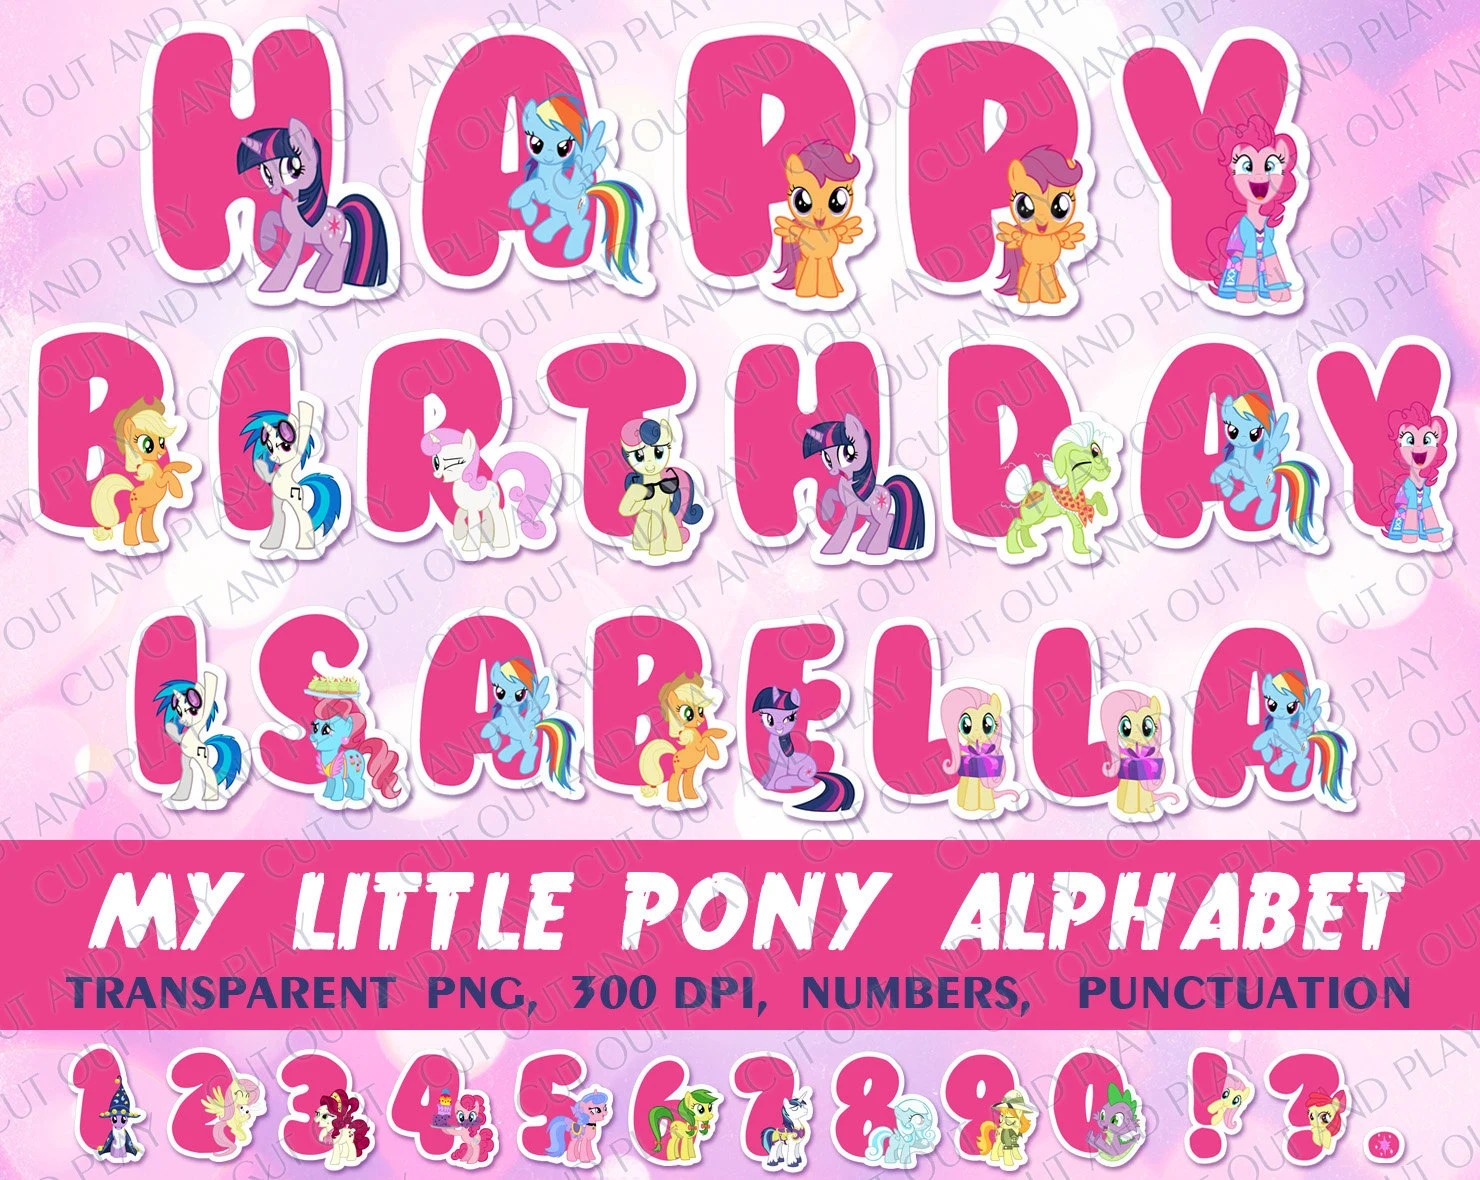 My Little Pony Alphabet Alphabet Clipart My Little Pony